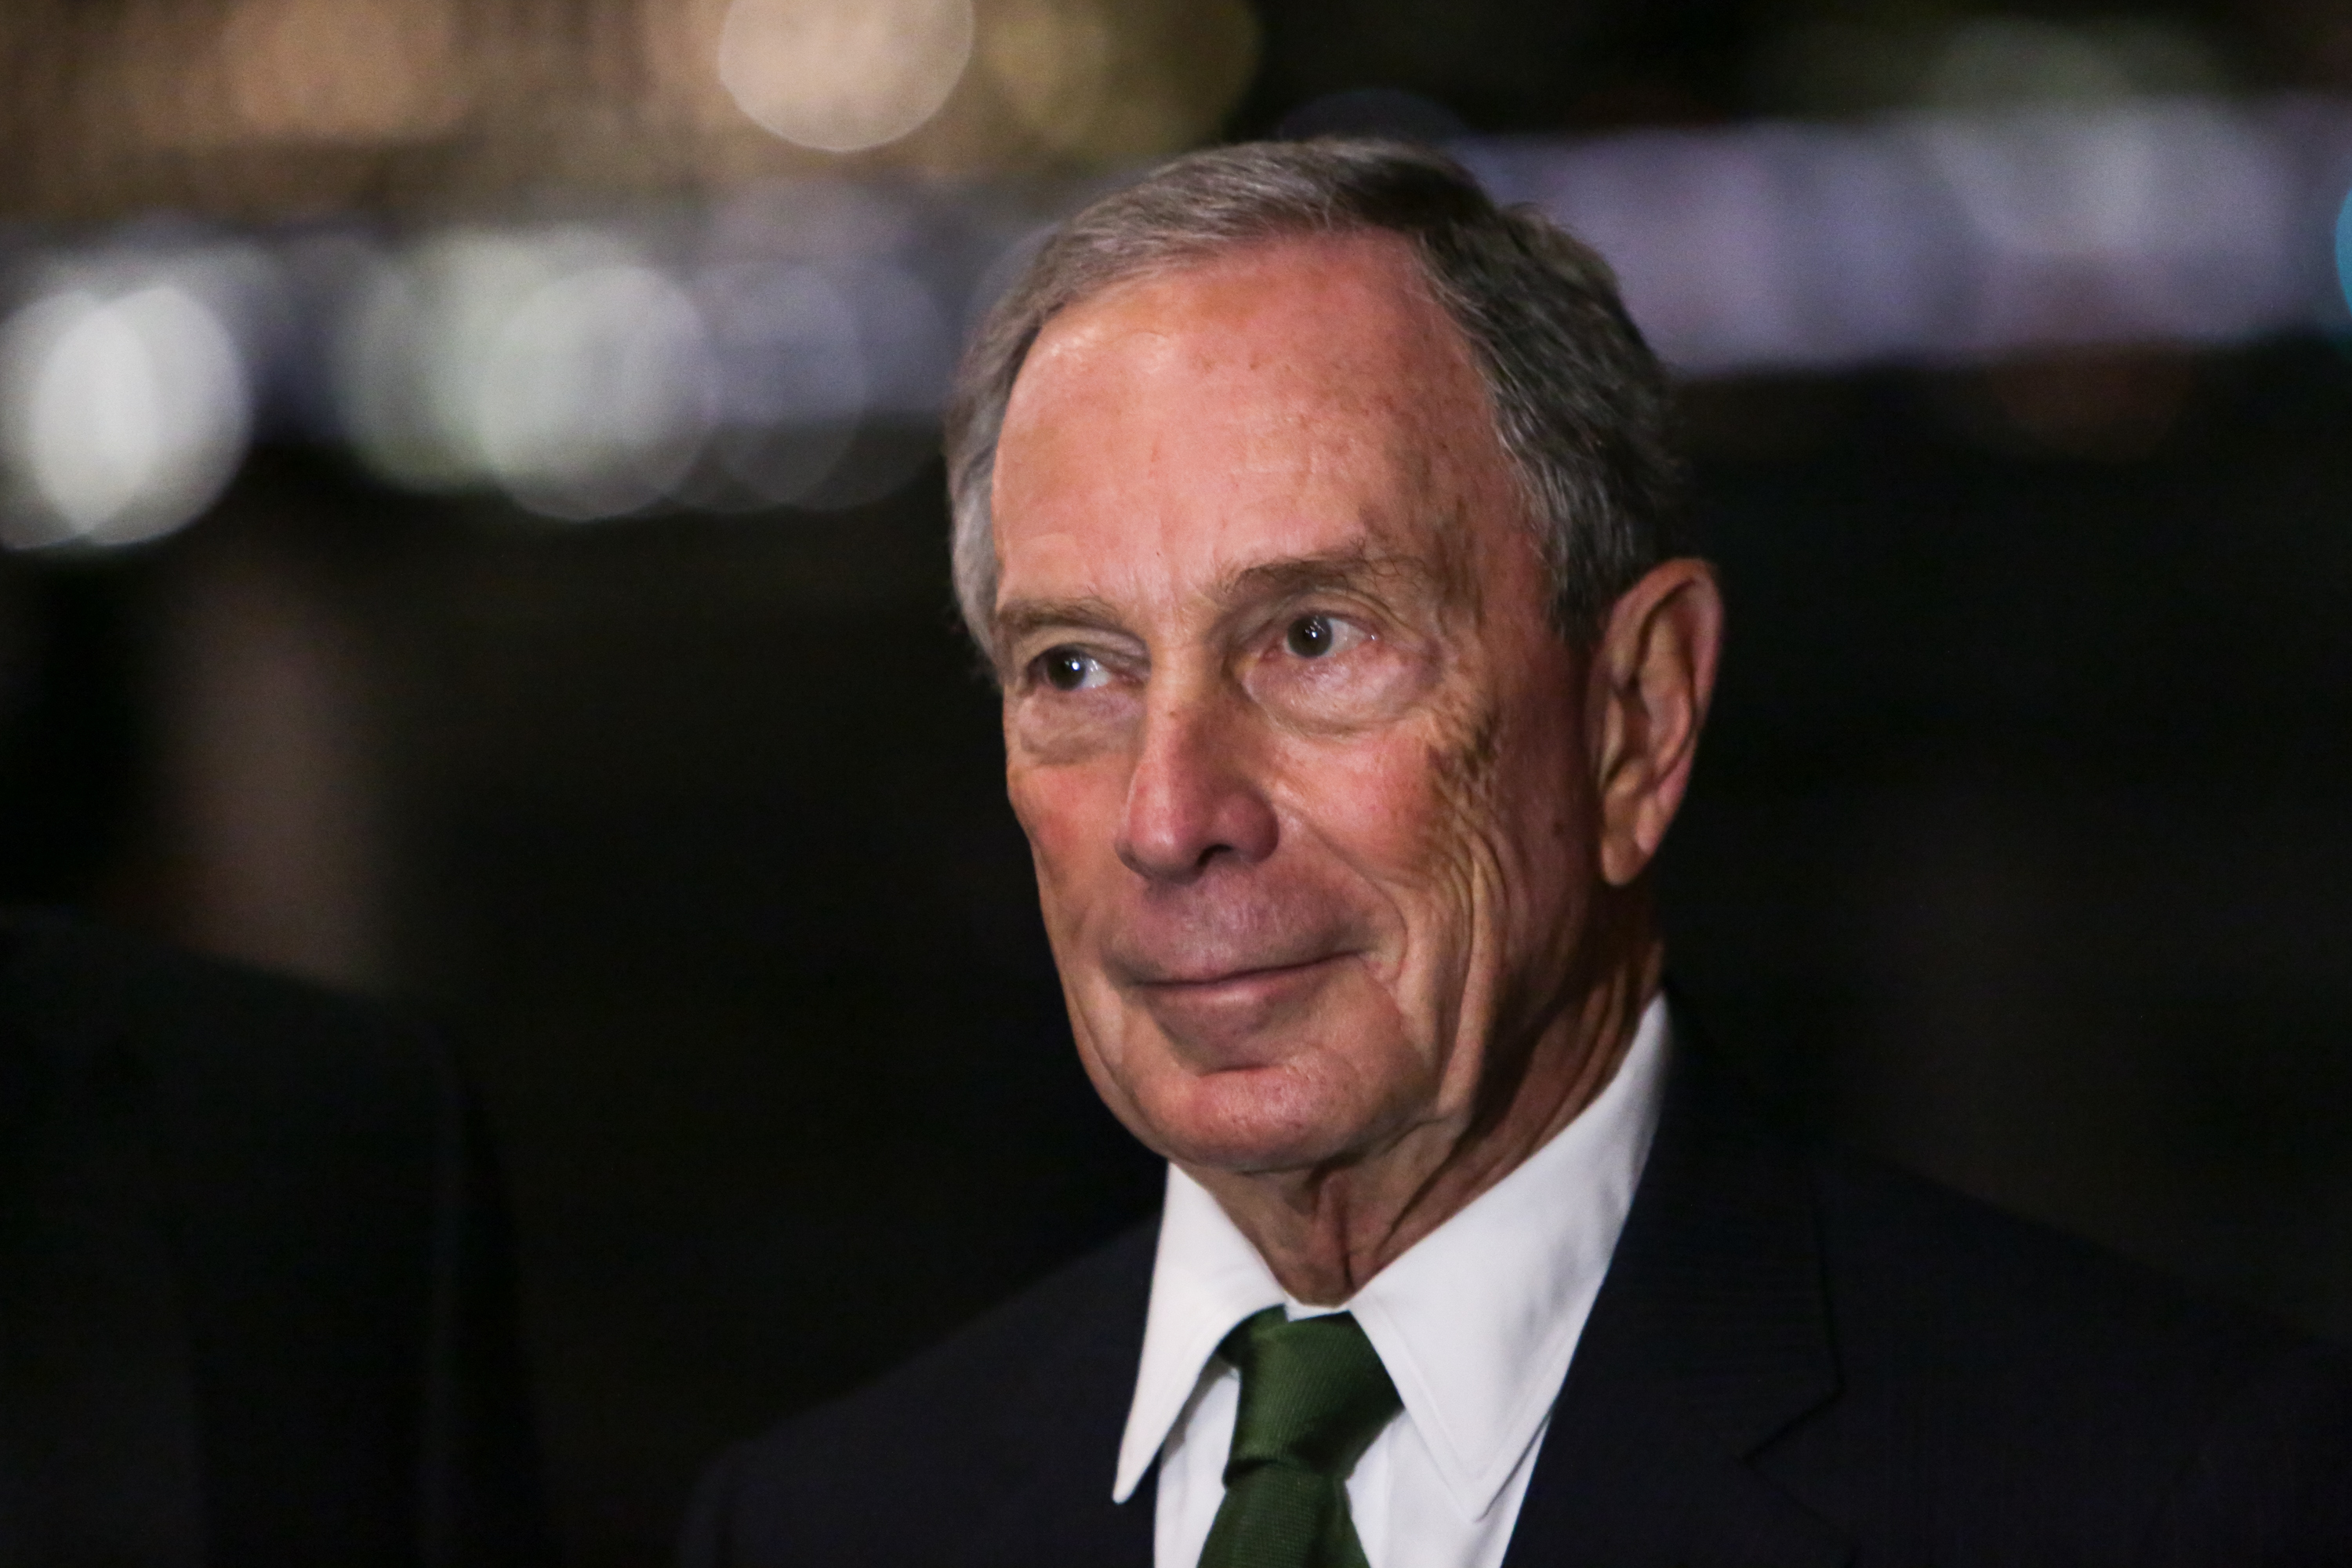 Michael Bloomberg  in New York City on Oct. 8, 2015.